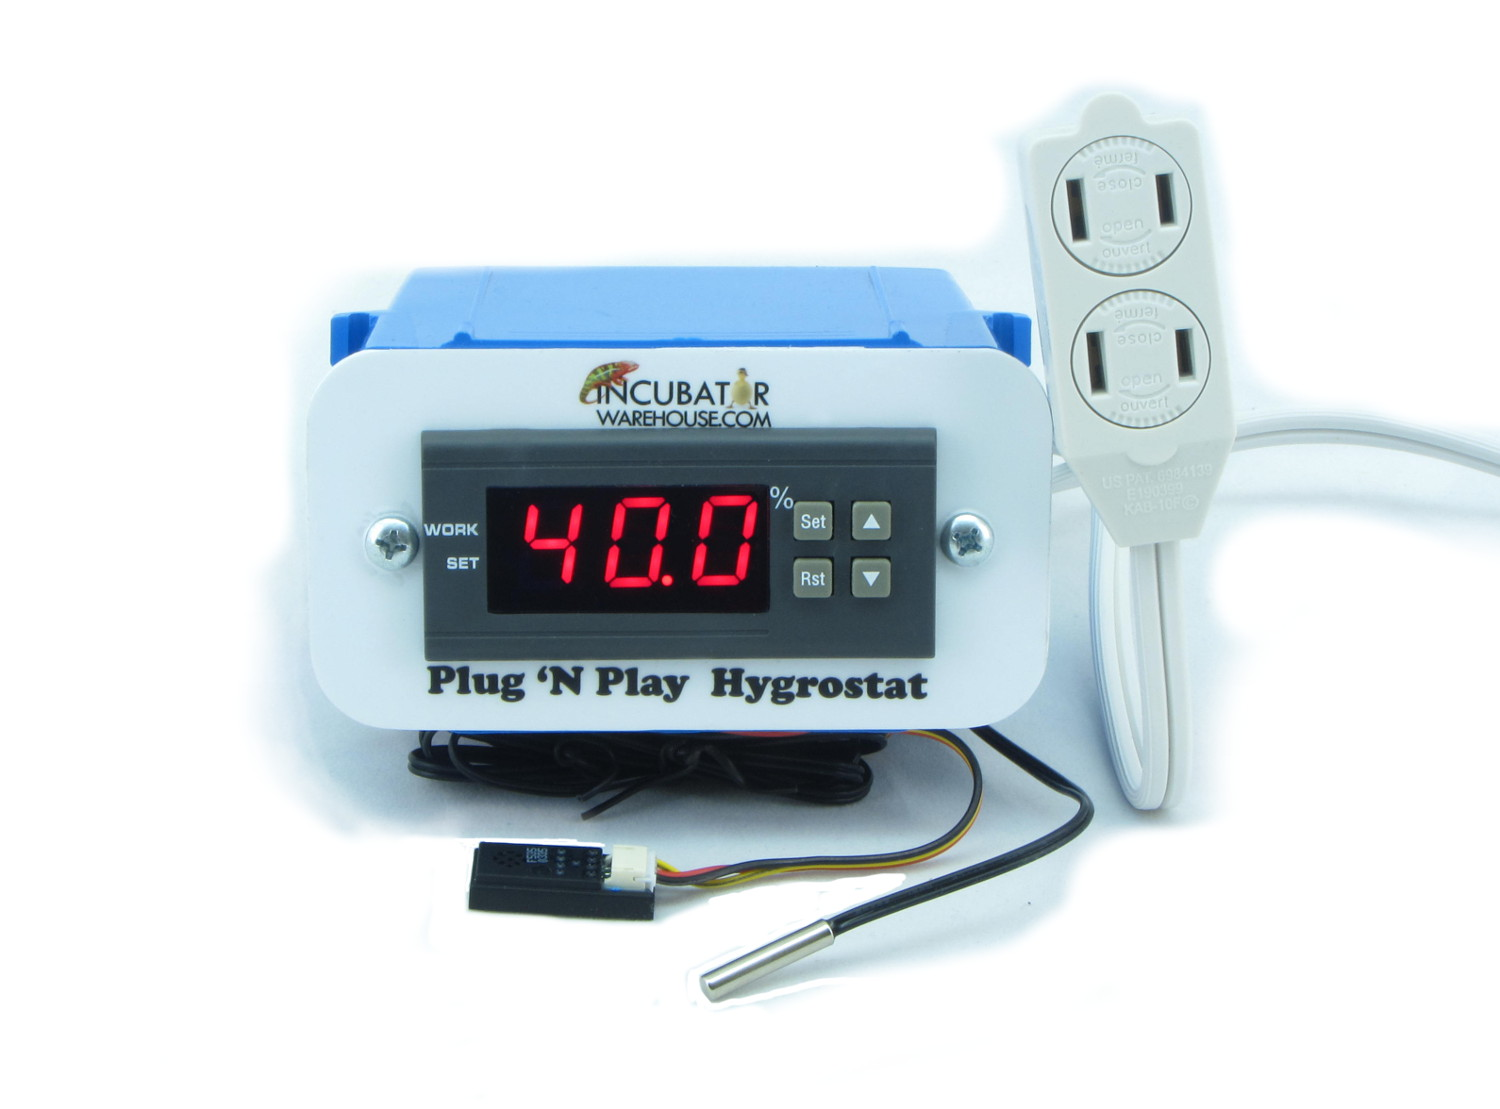 Plug 'n Play Hygrostat for humidity control in Egg Incubator, Reptile Terrarium